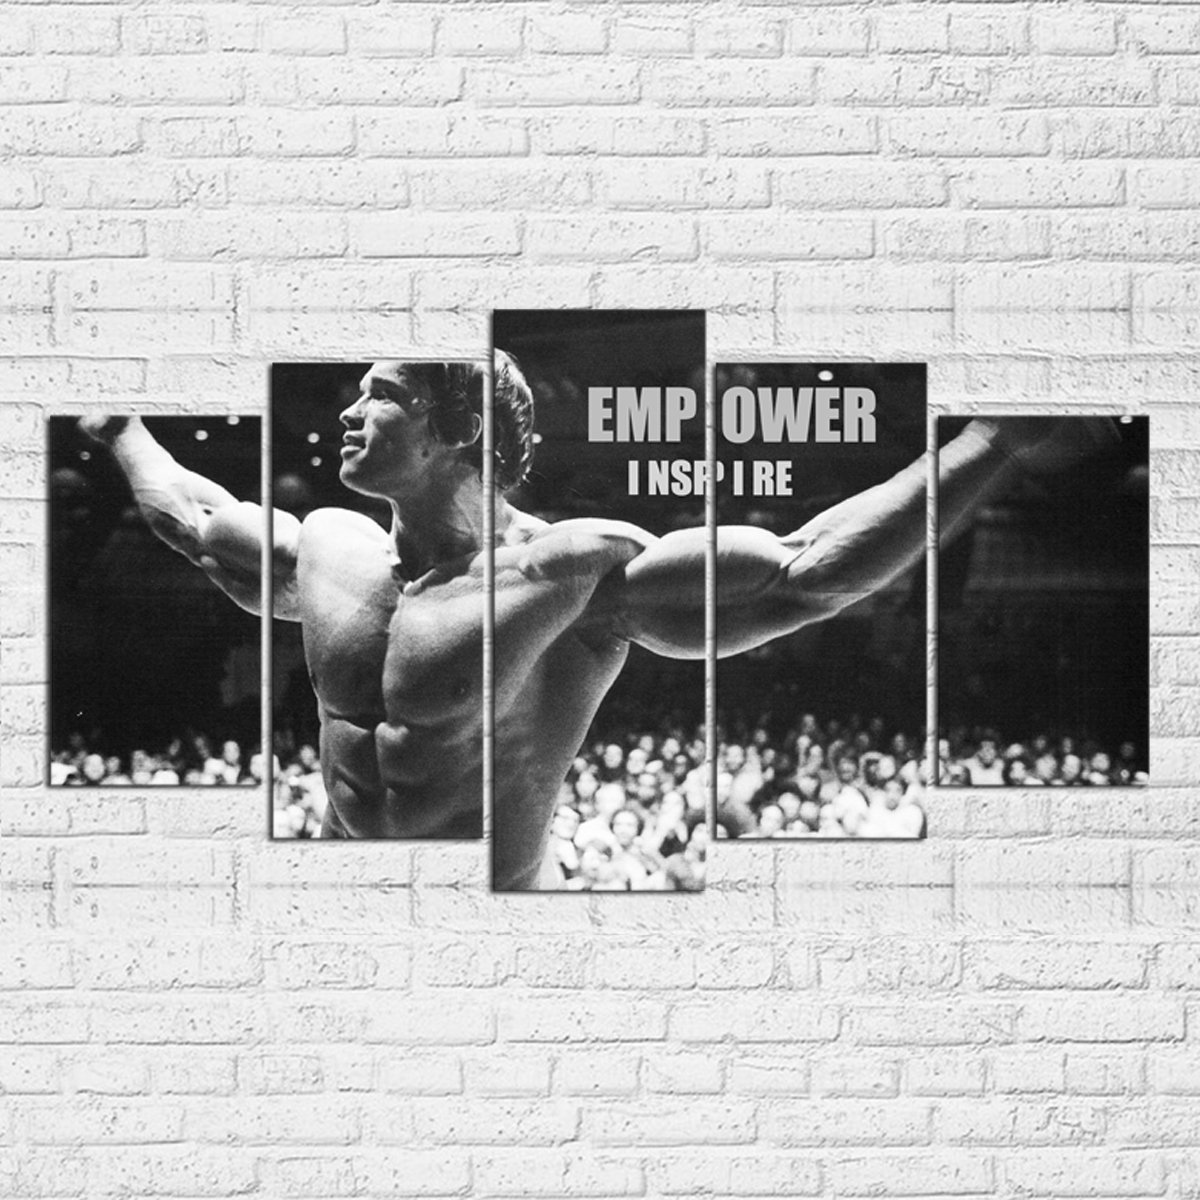 Empowered Living - 5PCS Framed Arnold Schwarzenegger Empower Inspire Canvas - Empower Inspire Motivational Wall Art for Office/Home Wall Decor (XLarge: 4060cm x2pcs+4080cm x2pcs+40100cm x1pc)